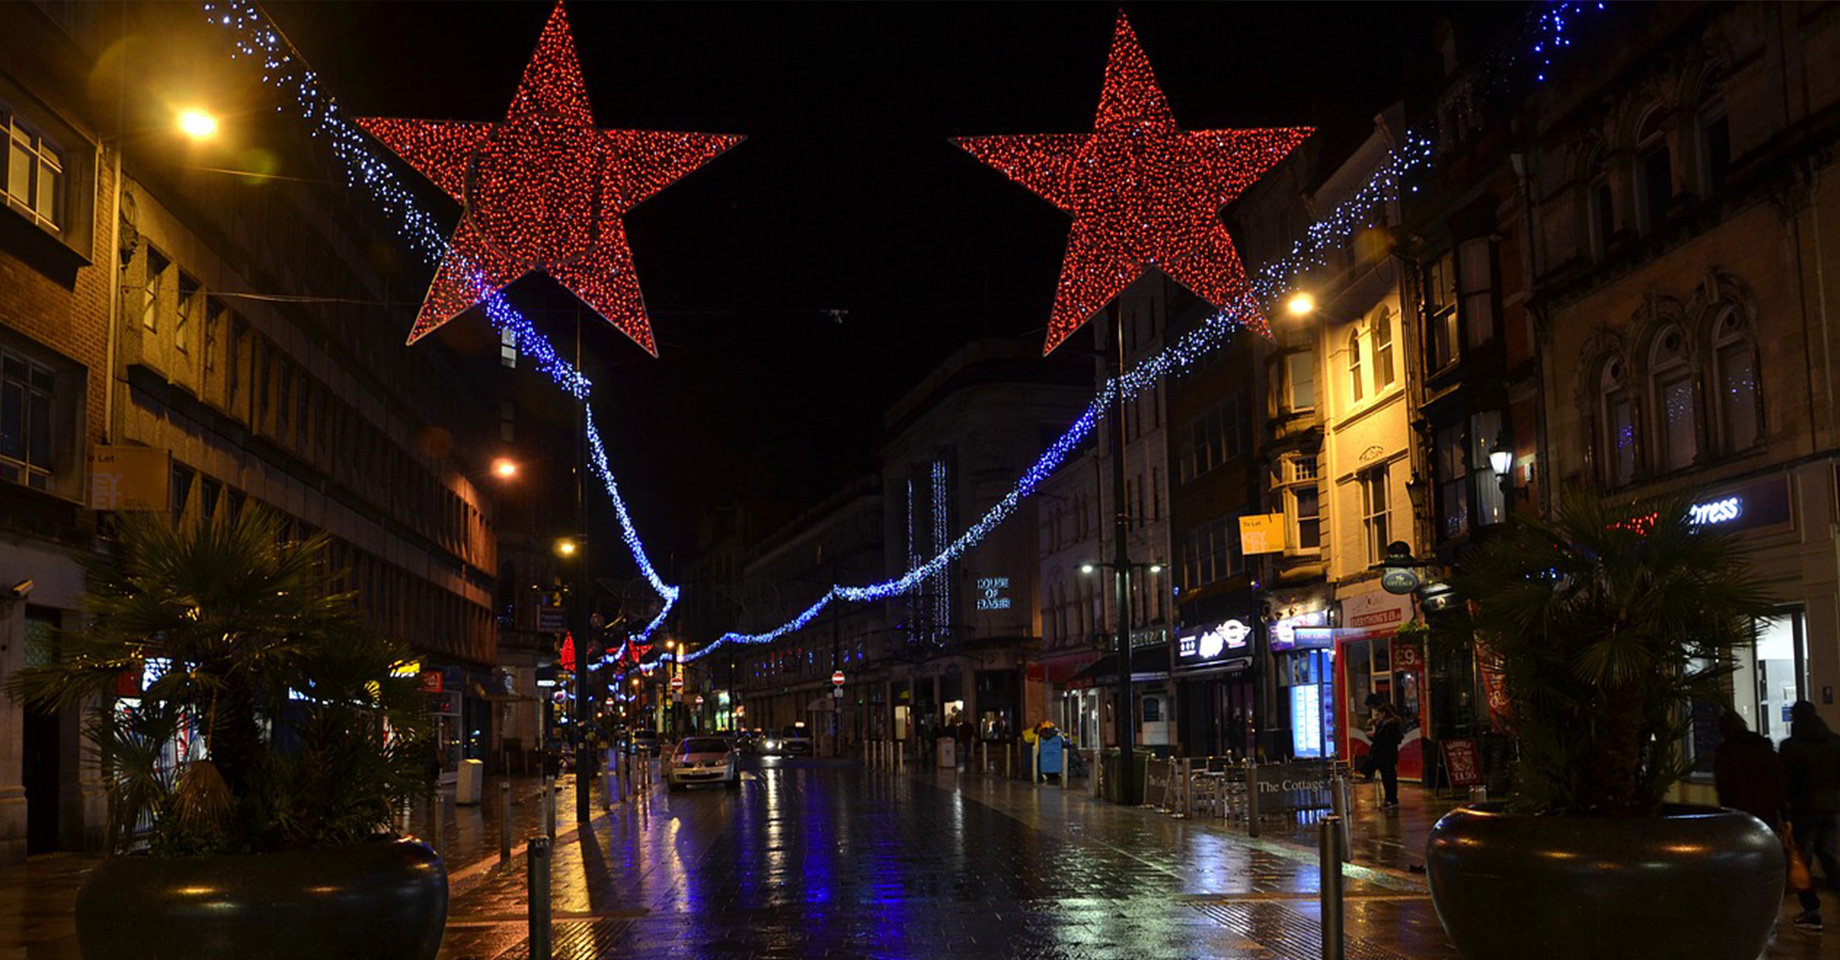 Cardiff High Street at Night